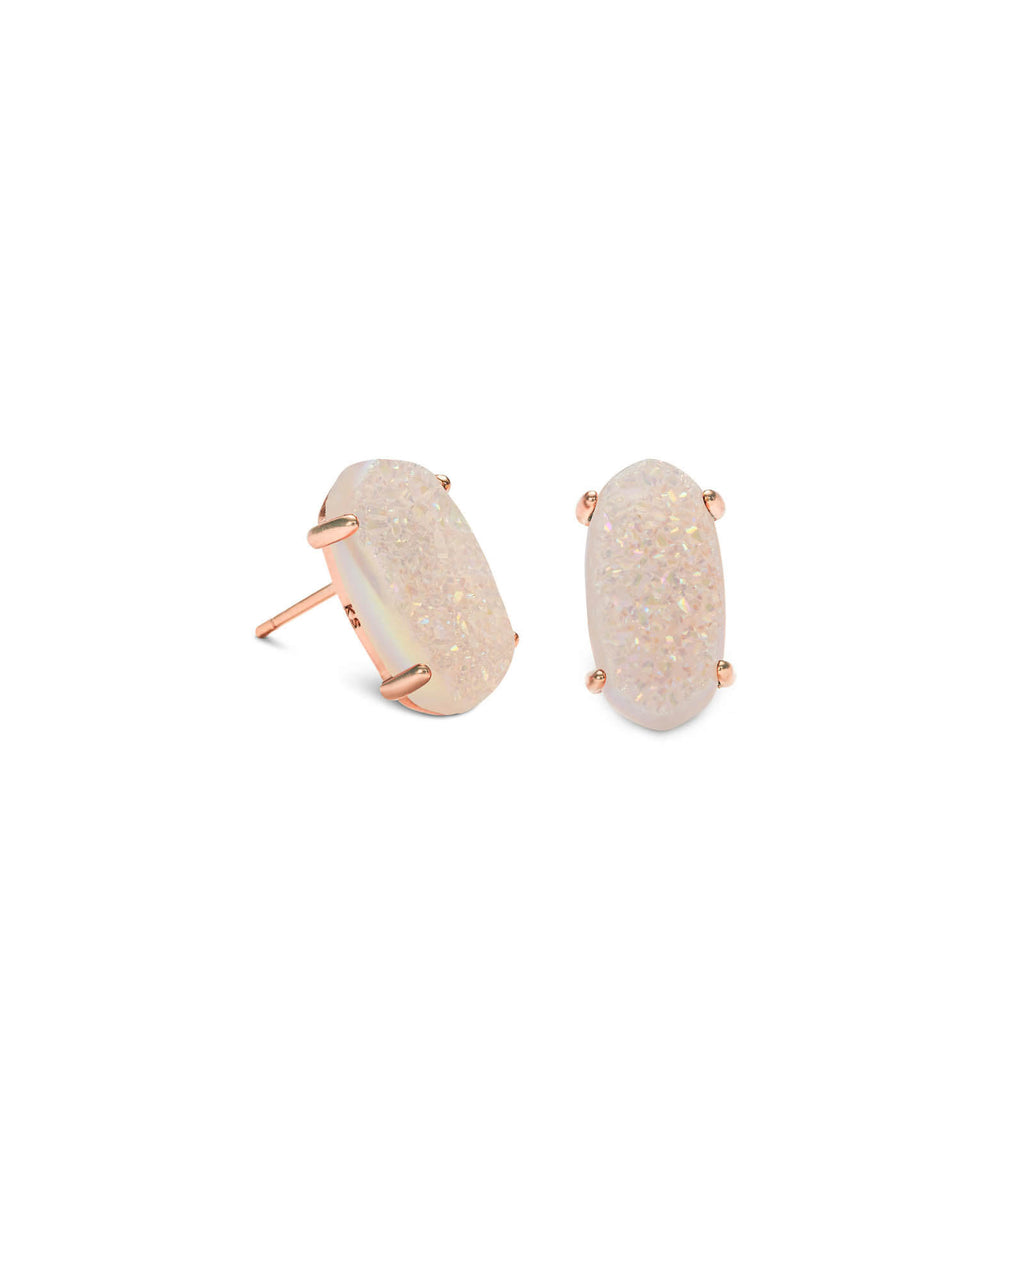 KENDRA SCOTT Betty Rose Gold Stud Earrings - Iridescent Drusy